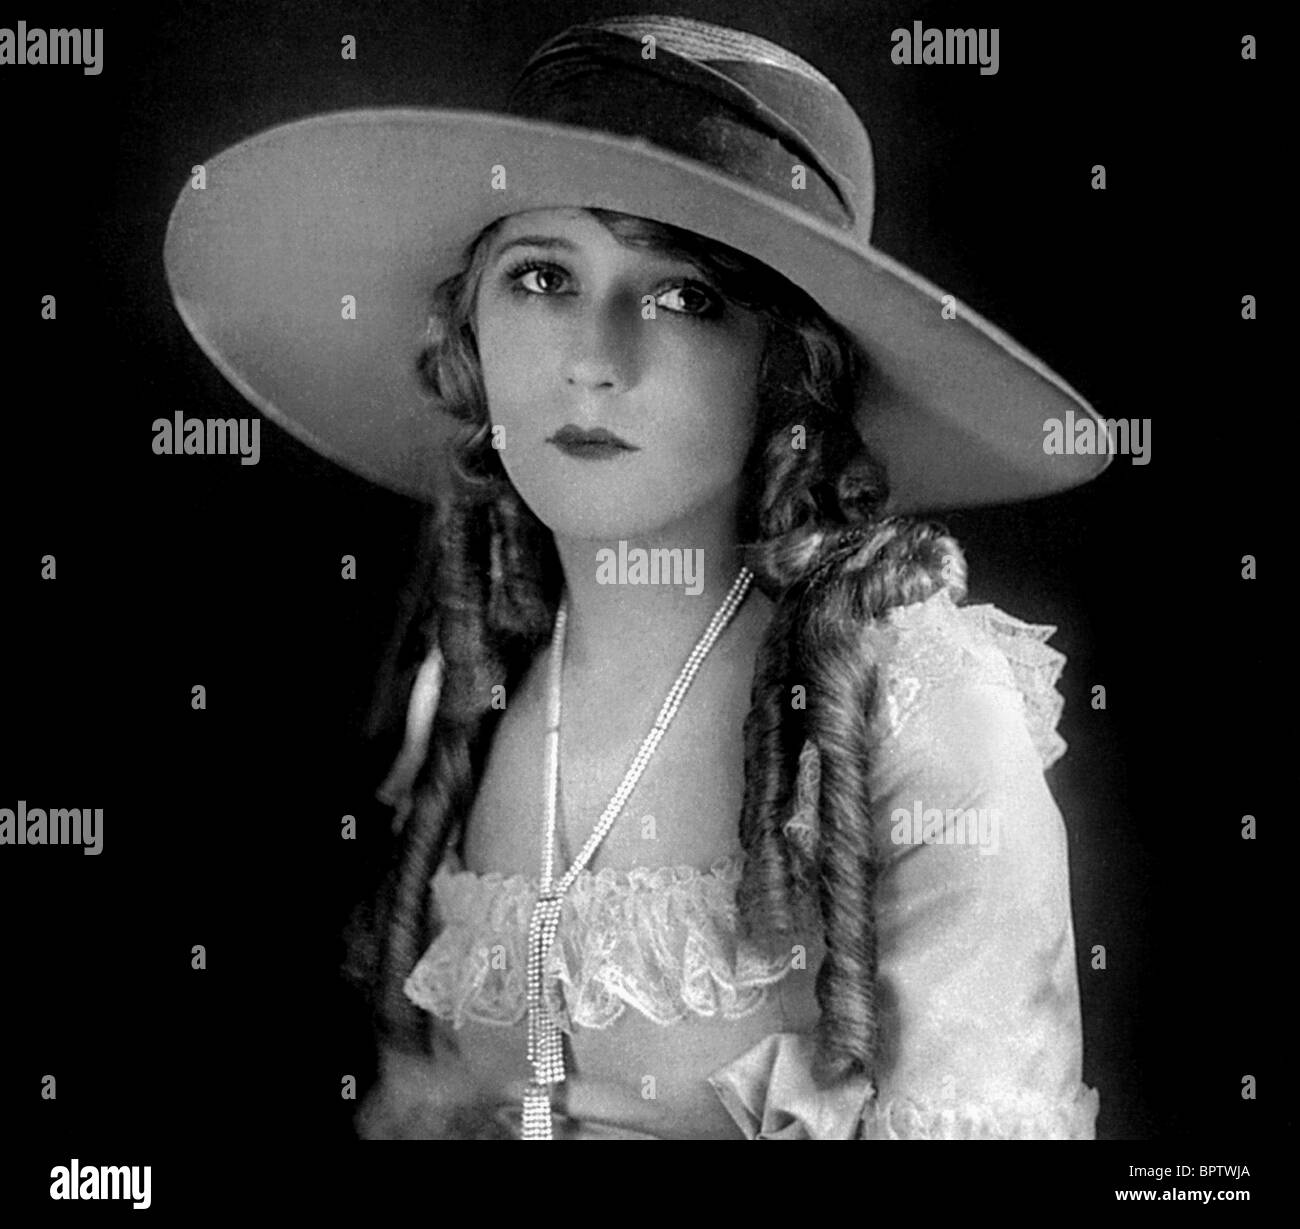 MARY PICKFORD ACTRESS (1918) - Stock Image